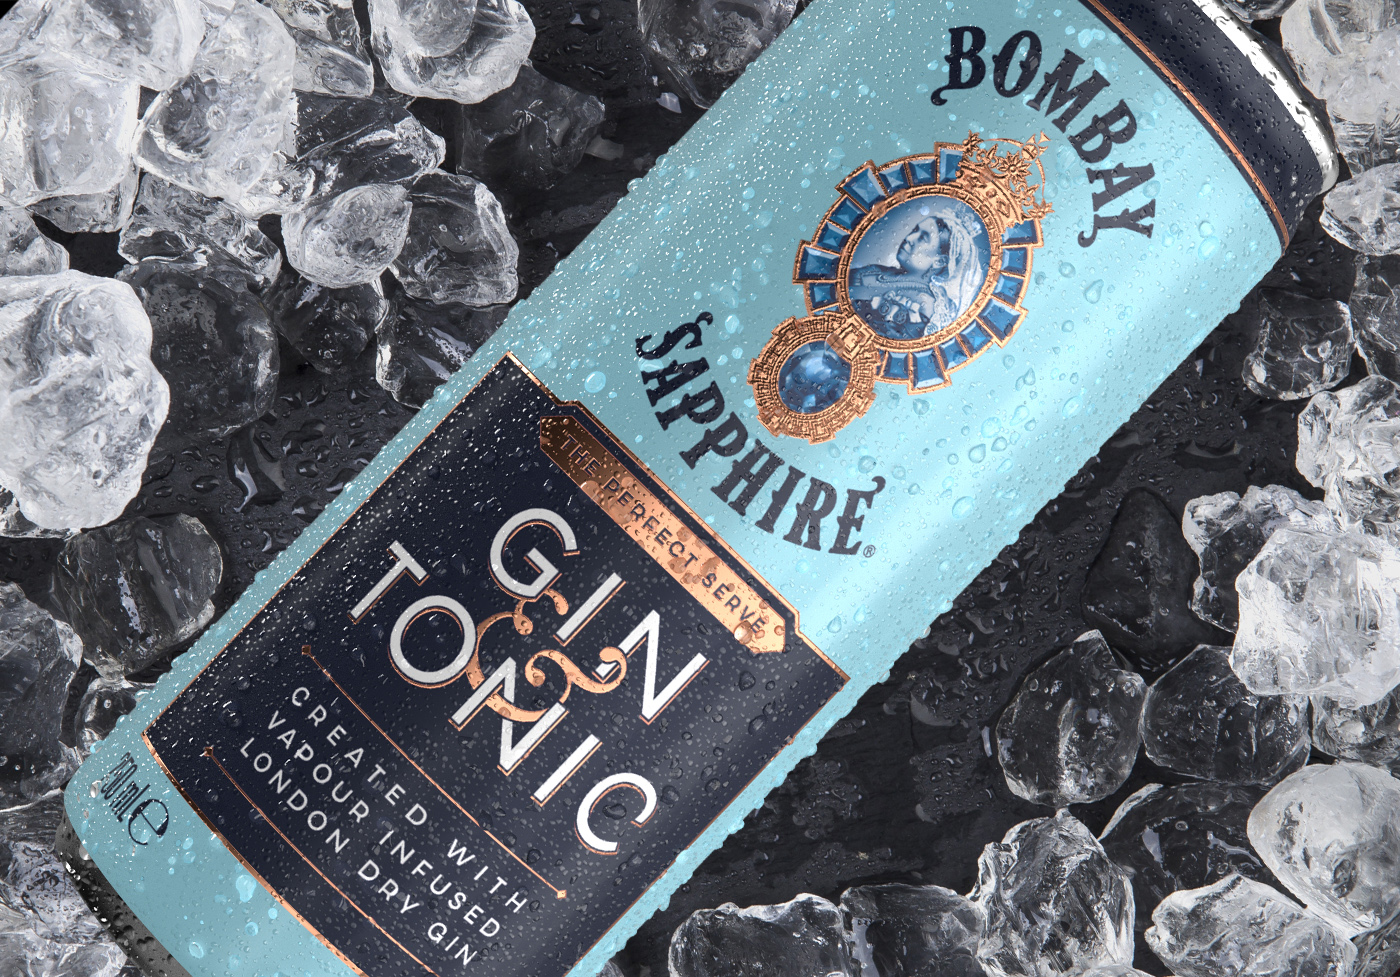 Knockout Design Create Bombay Sapphire's New RTD Offering